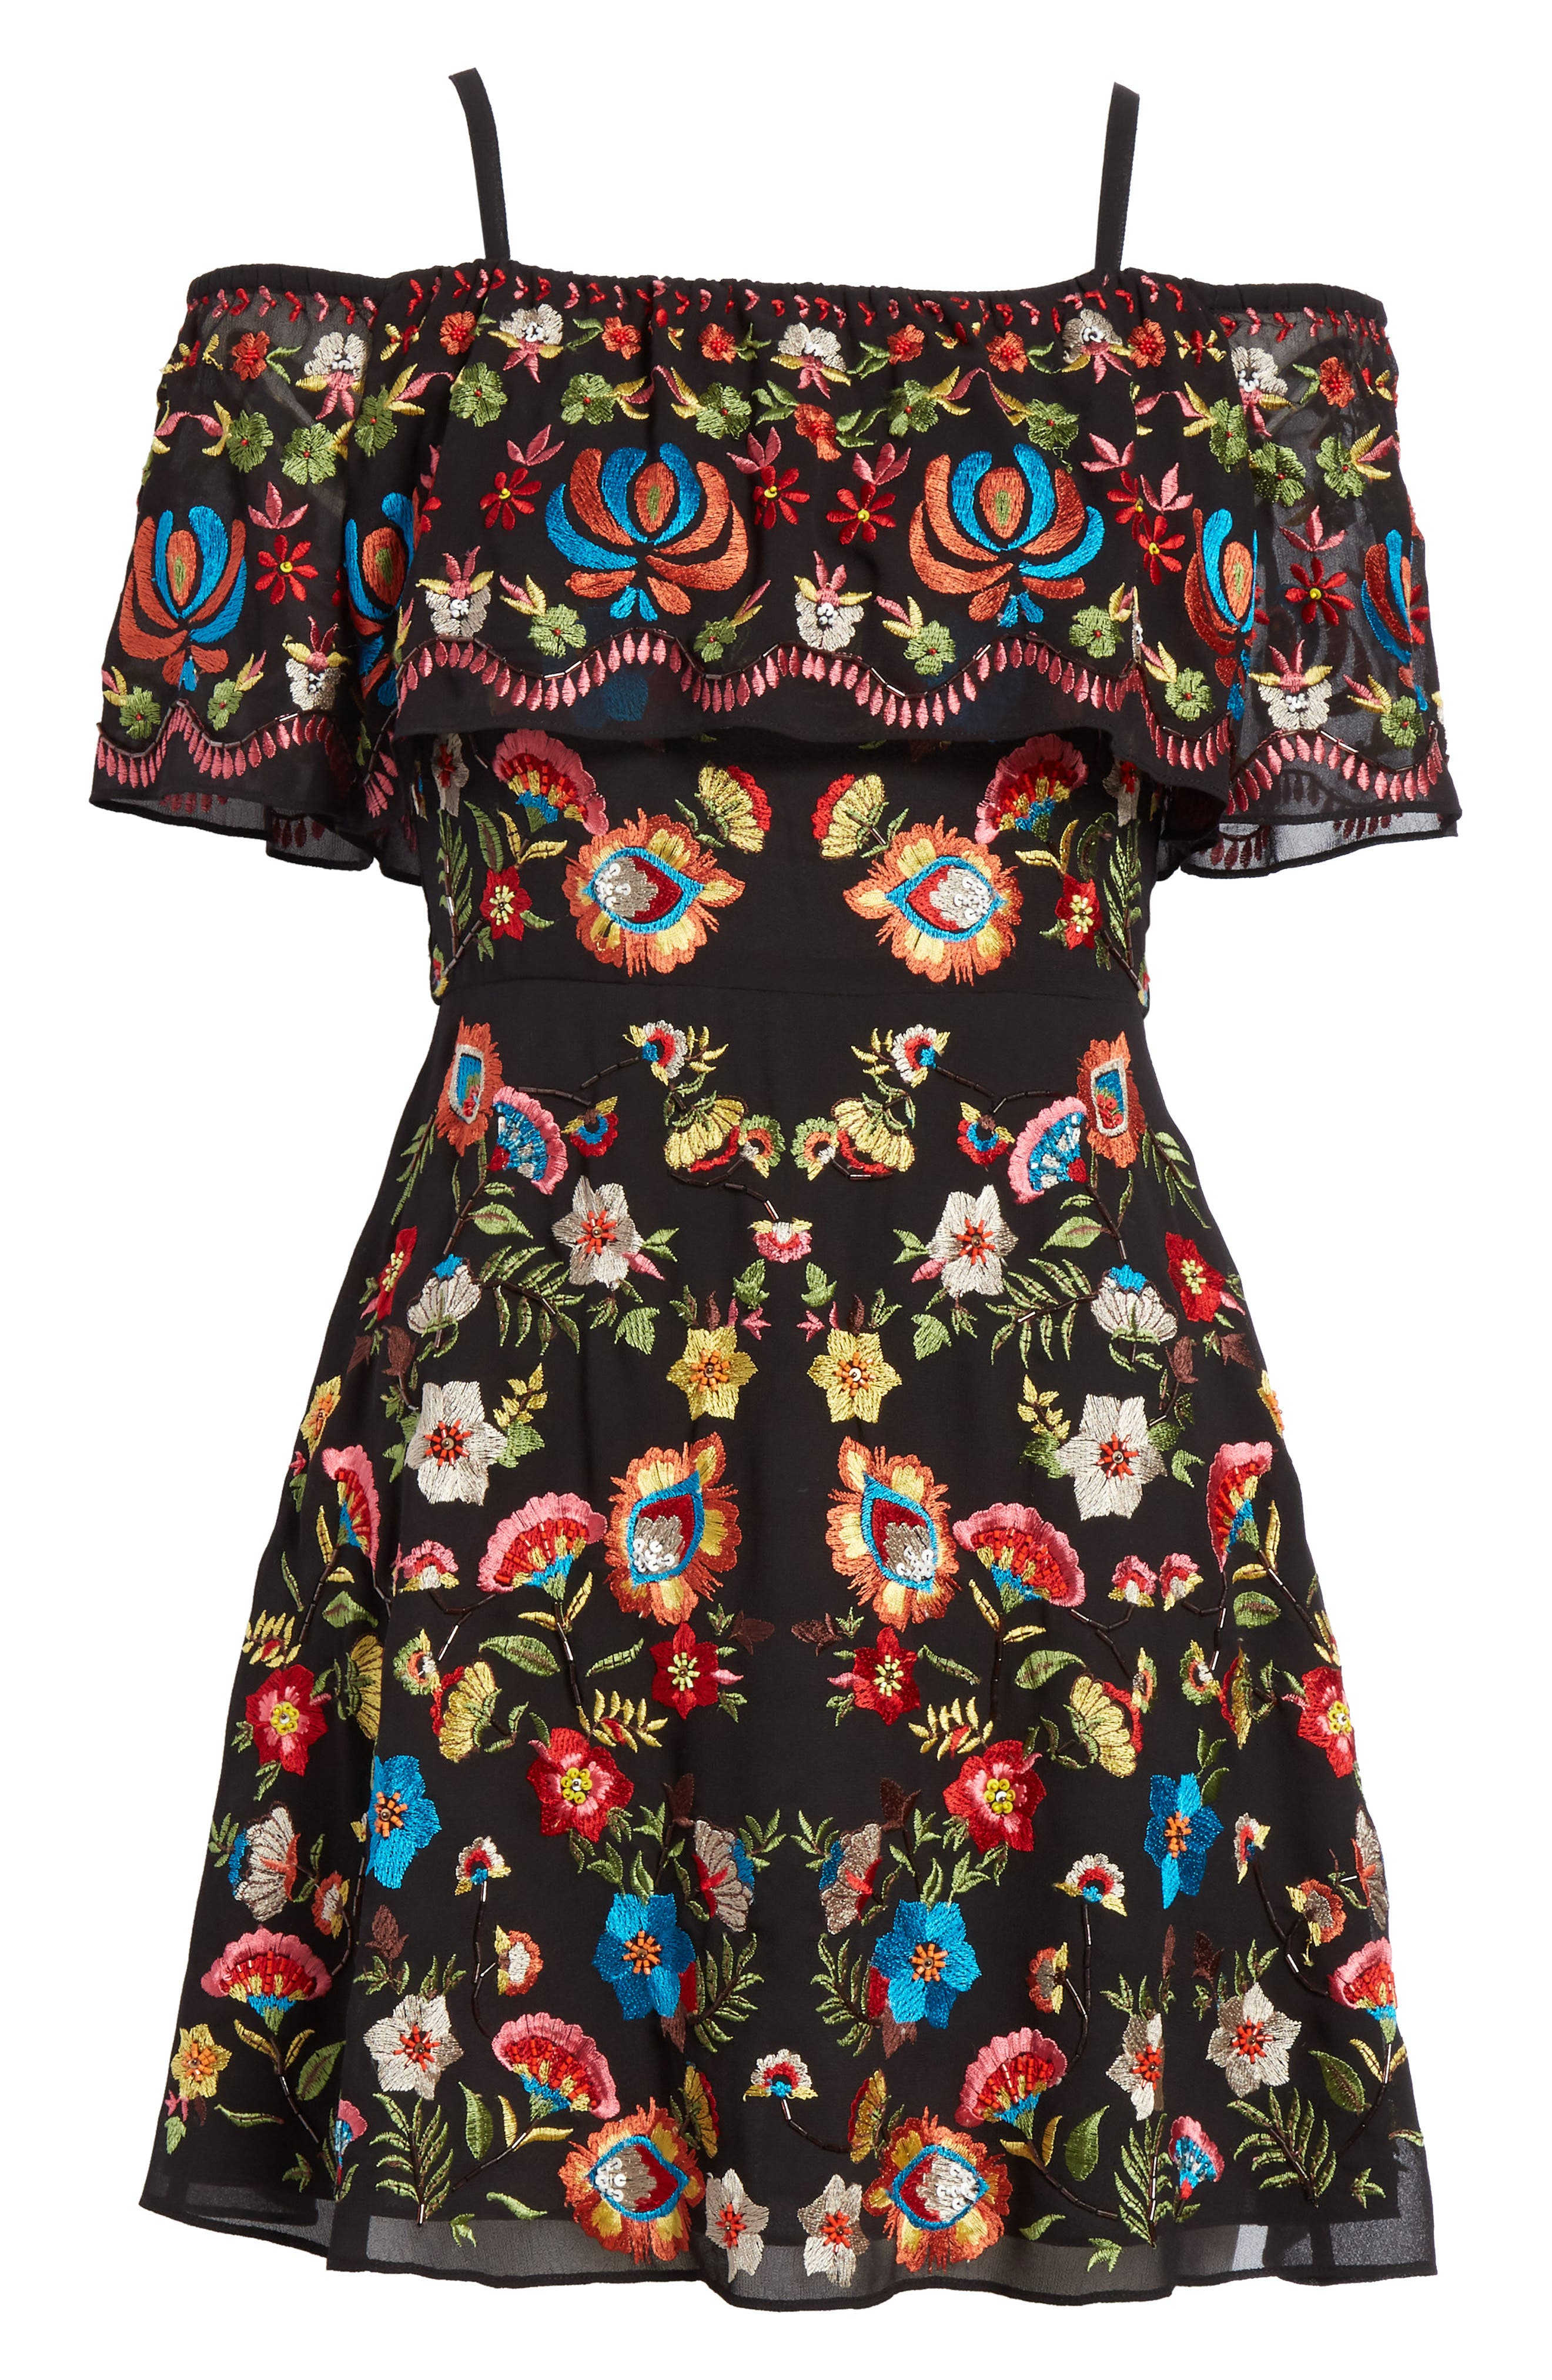 ALICE + OLIVIA,                             Francina Embroidered Off the Shoulder Minidress,                             Alternate thumbnail 6, color,                             019